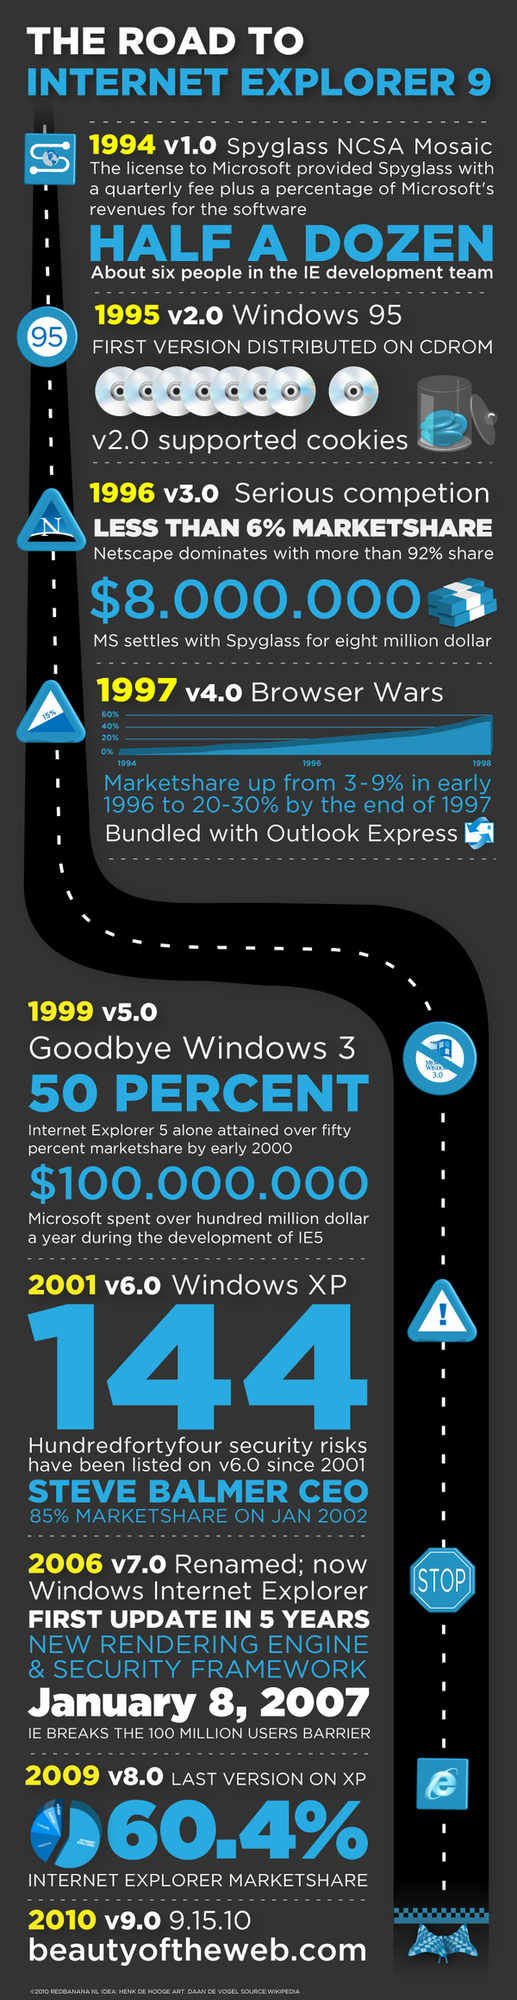 The Road to IE 9 [INFOGRAPHIC]